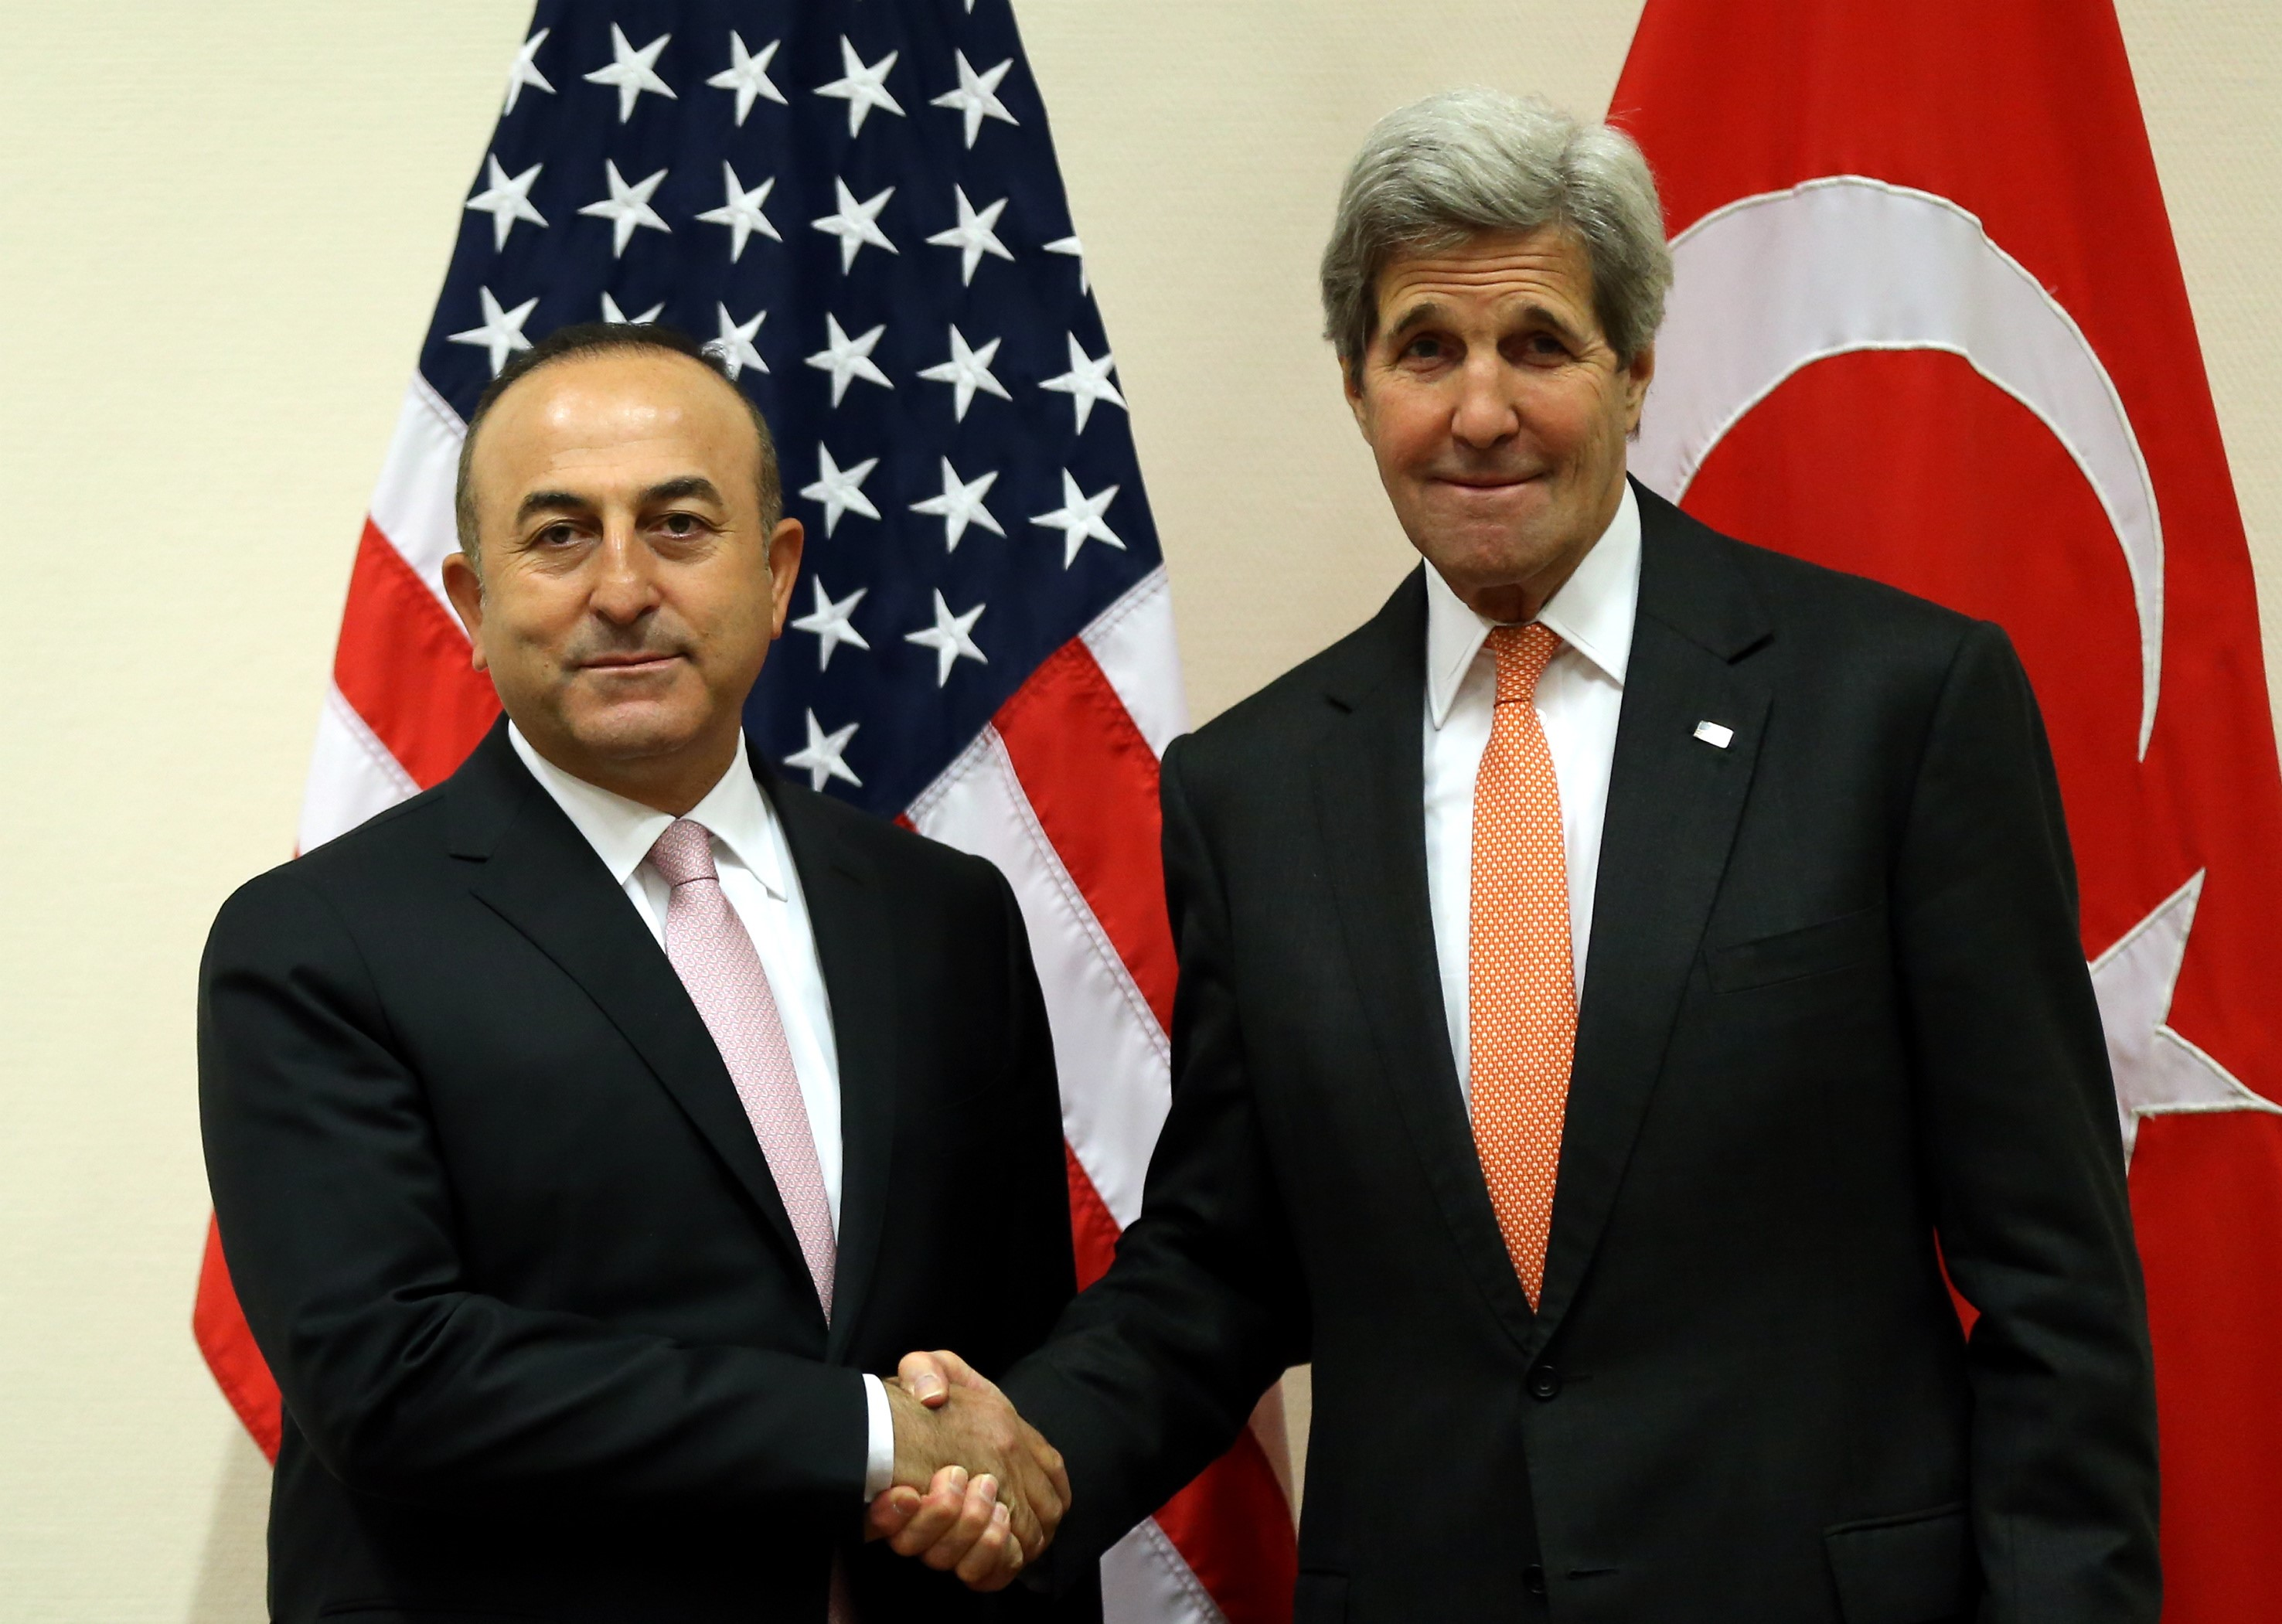 Turkish Foreign Affairs Minister Mevlut Cavusoglu (left) and US Secretary of State John Kerry (right) shake hands during the NATO Foreign ministers meeting at the NATO headquarters in Brussels, Belgium on May 20, 2016.